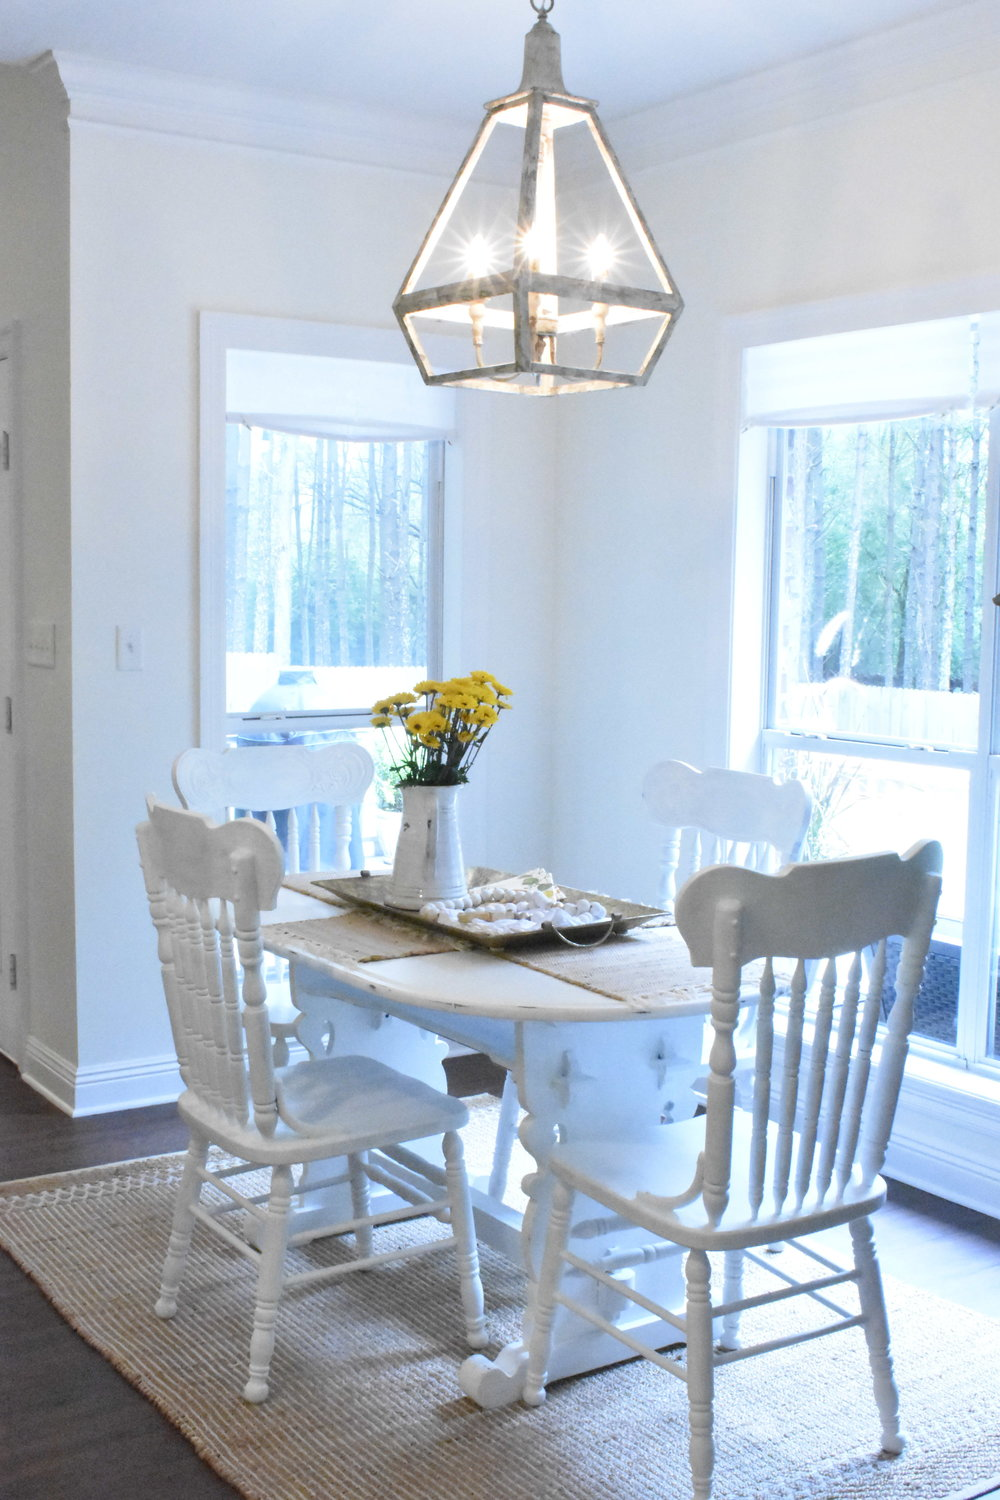 Breakfast area with centerpiece decor from Rubies Home Furnishings.